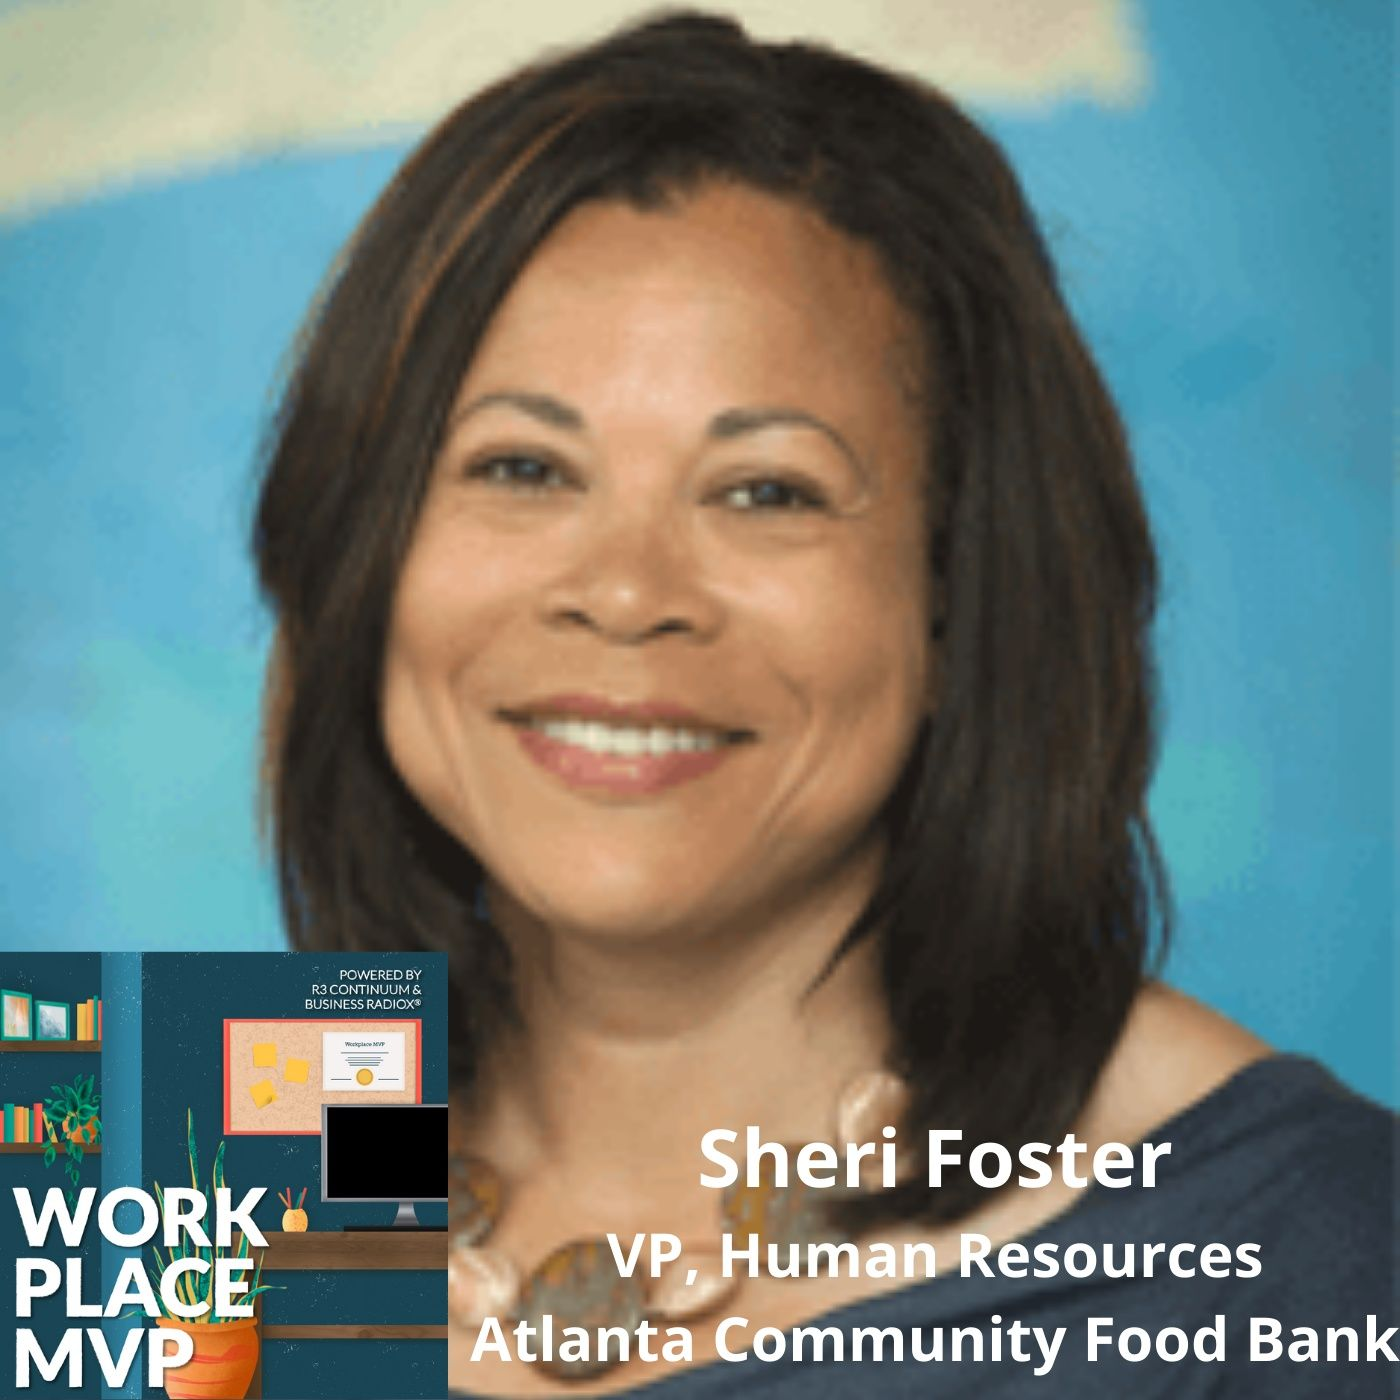 How Employee Work Teams Improved Decision Making in Our Organization, with Sheri Foster, Atlanta Community Food Bank